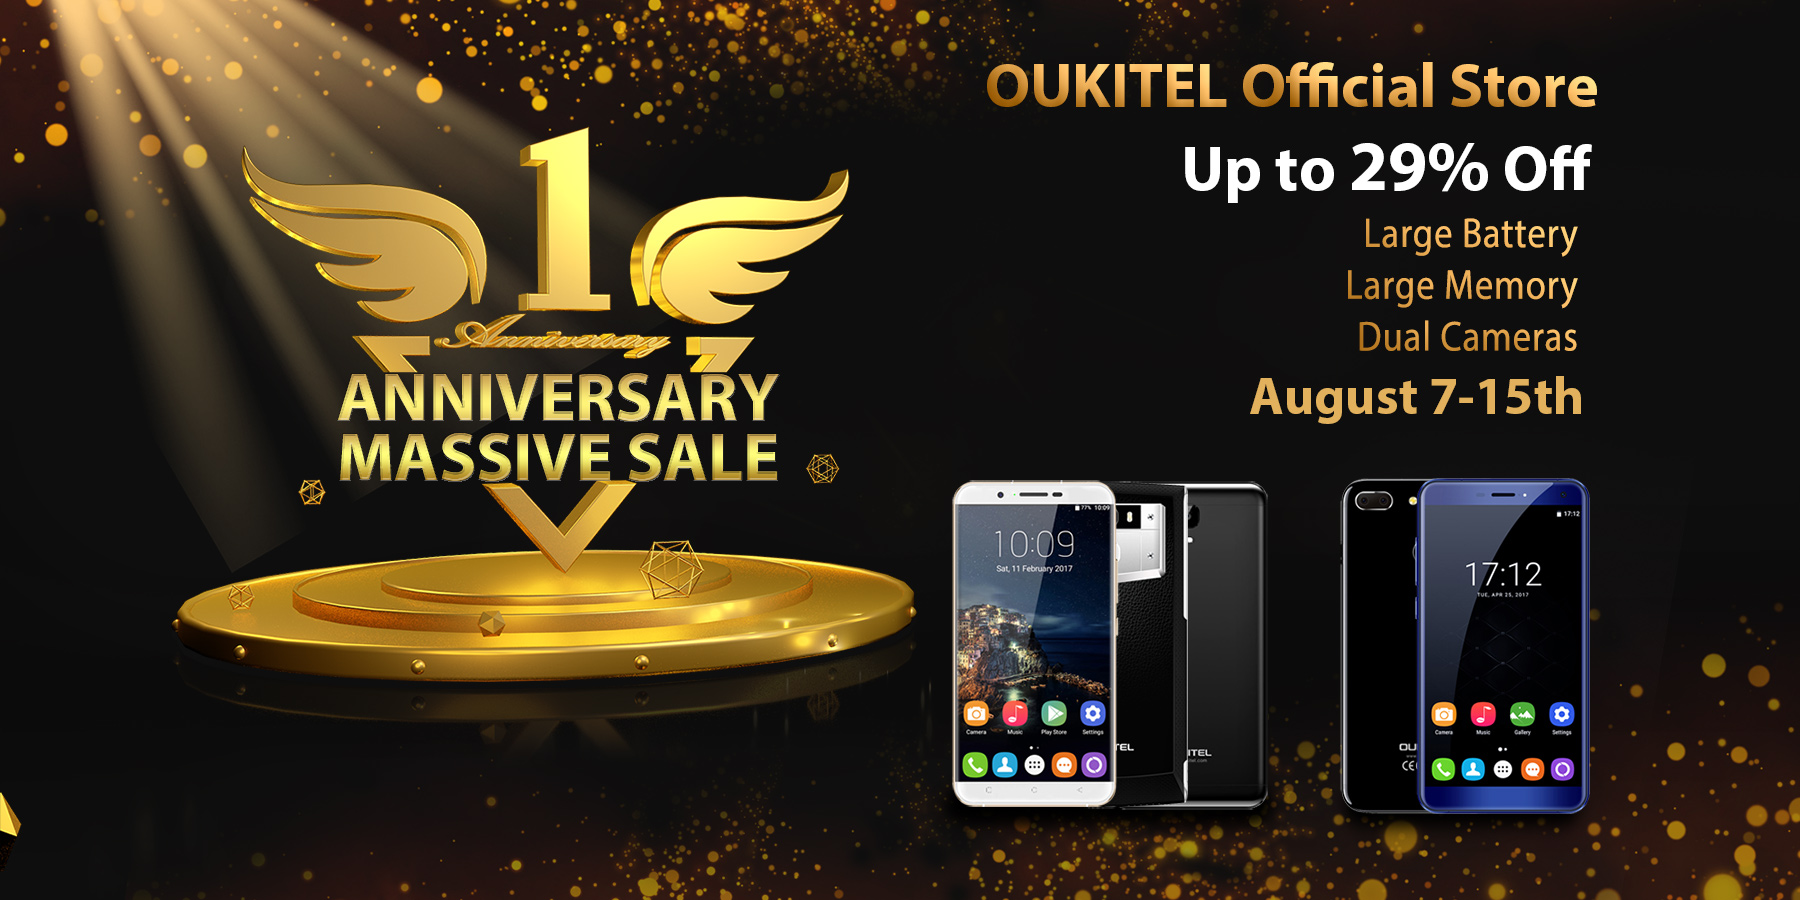 The smartphone maker is celebrating the birthday of a major sale